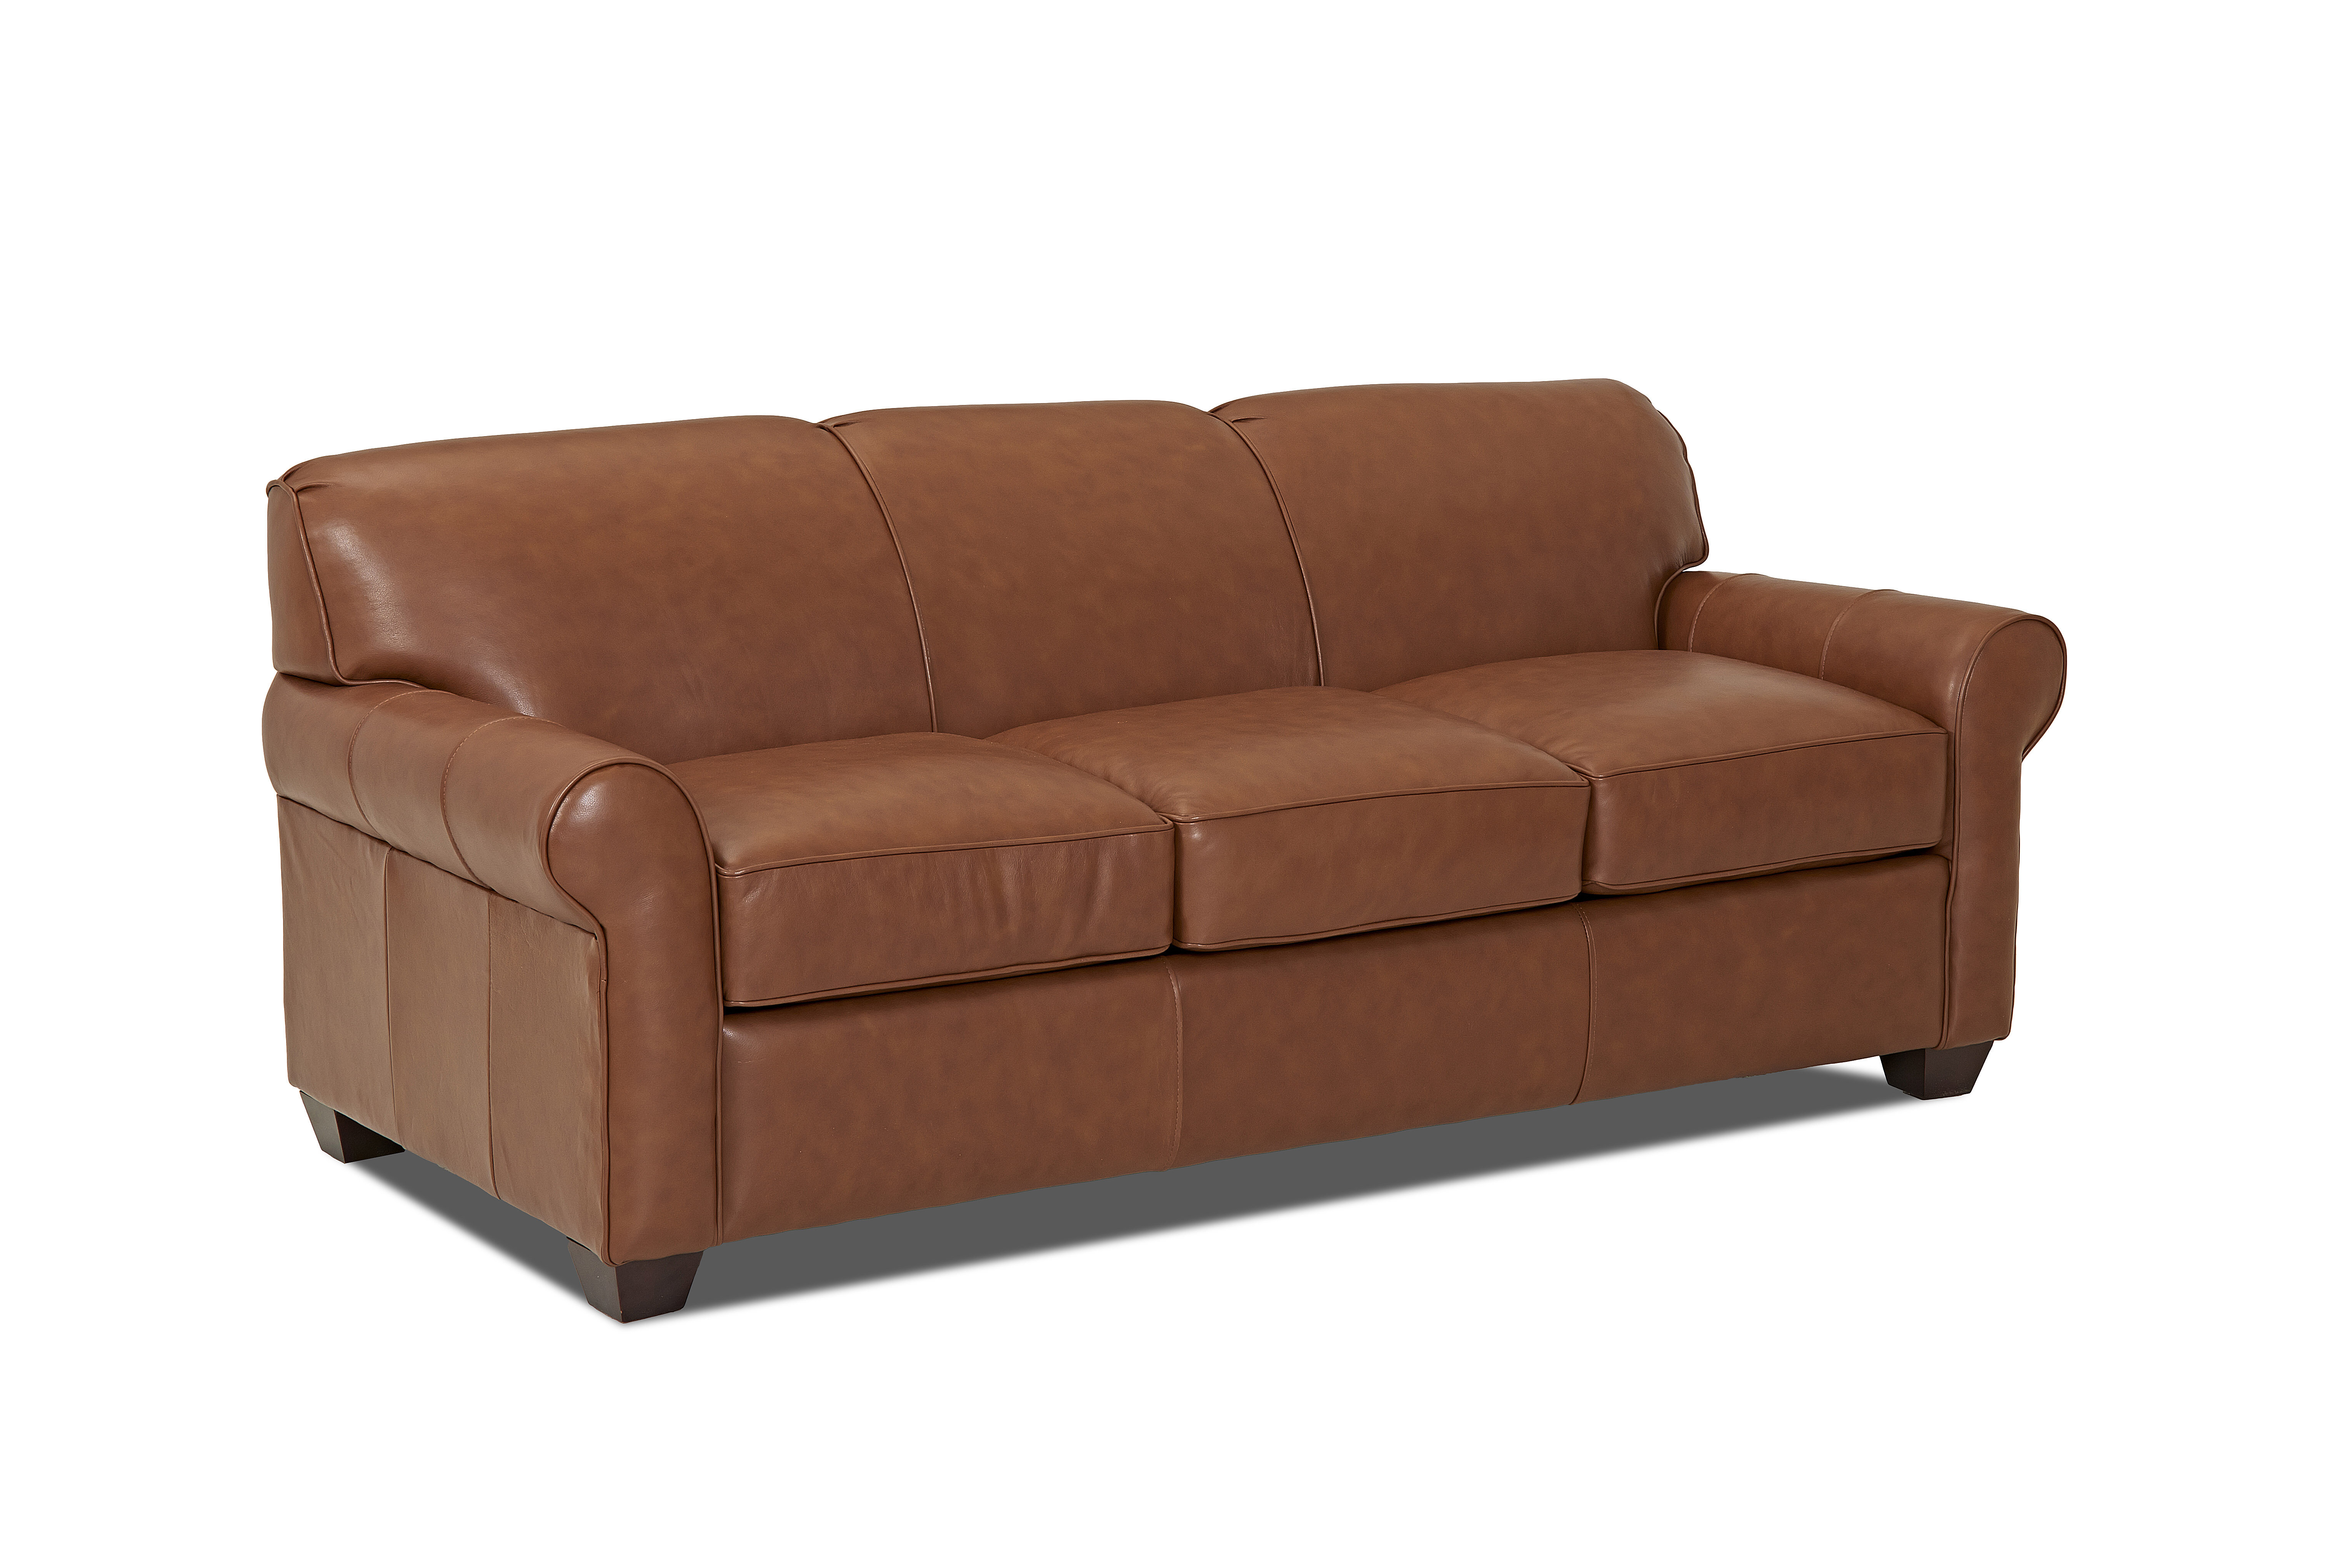 to loveseat brown twin red out pull walmart furniture king beds sofa sectional living the couch flexsteel sleeper bed finding ikea rooms perfect small reclining trundle most serta sofas leather comfortable spaces go